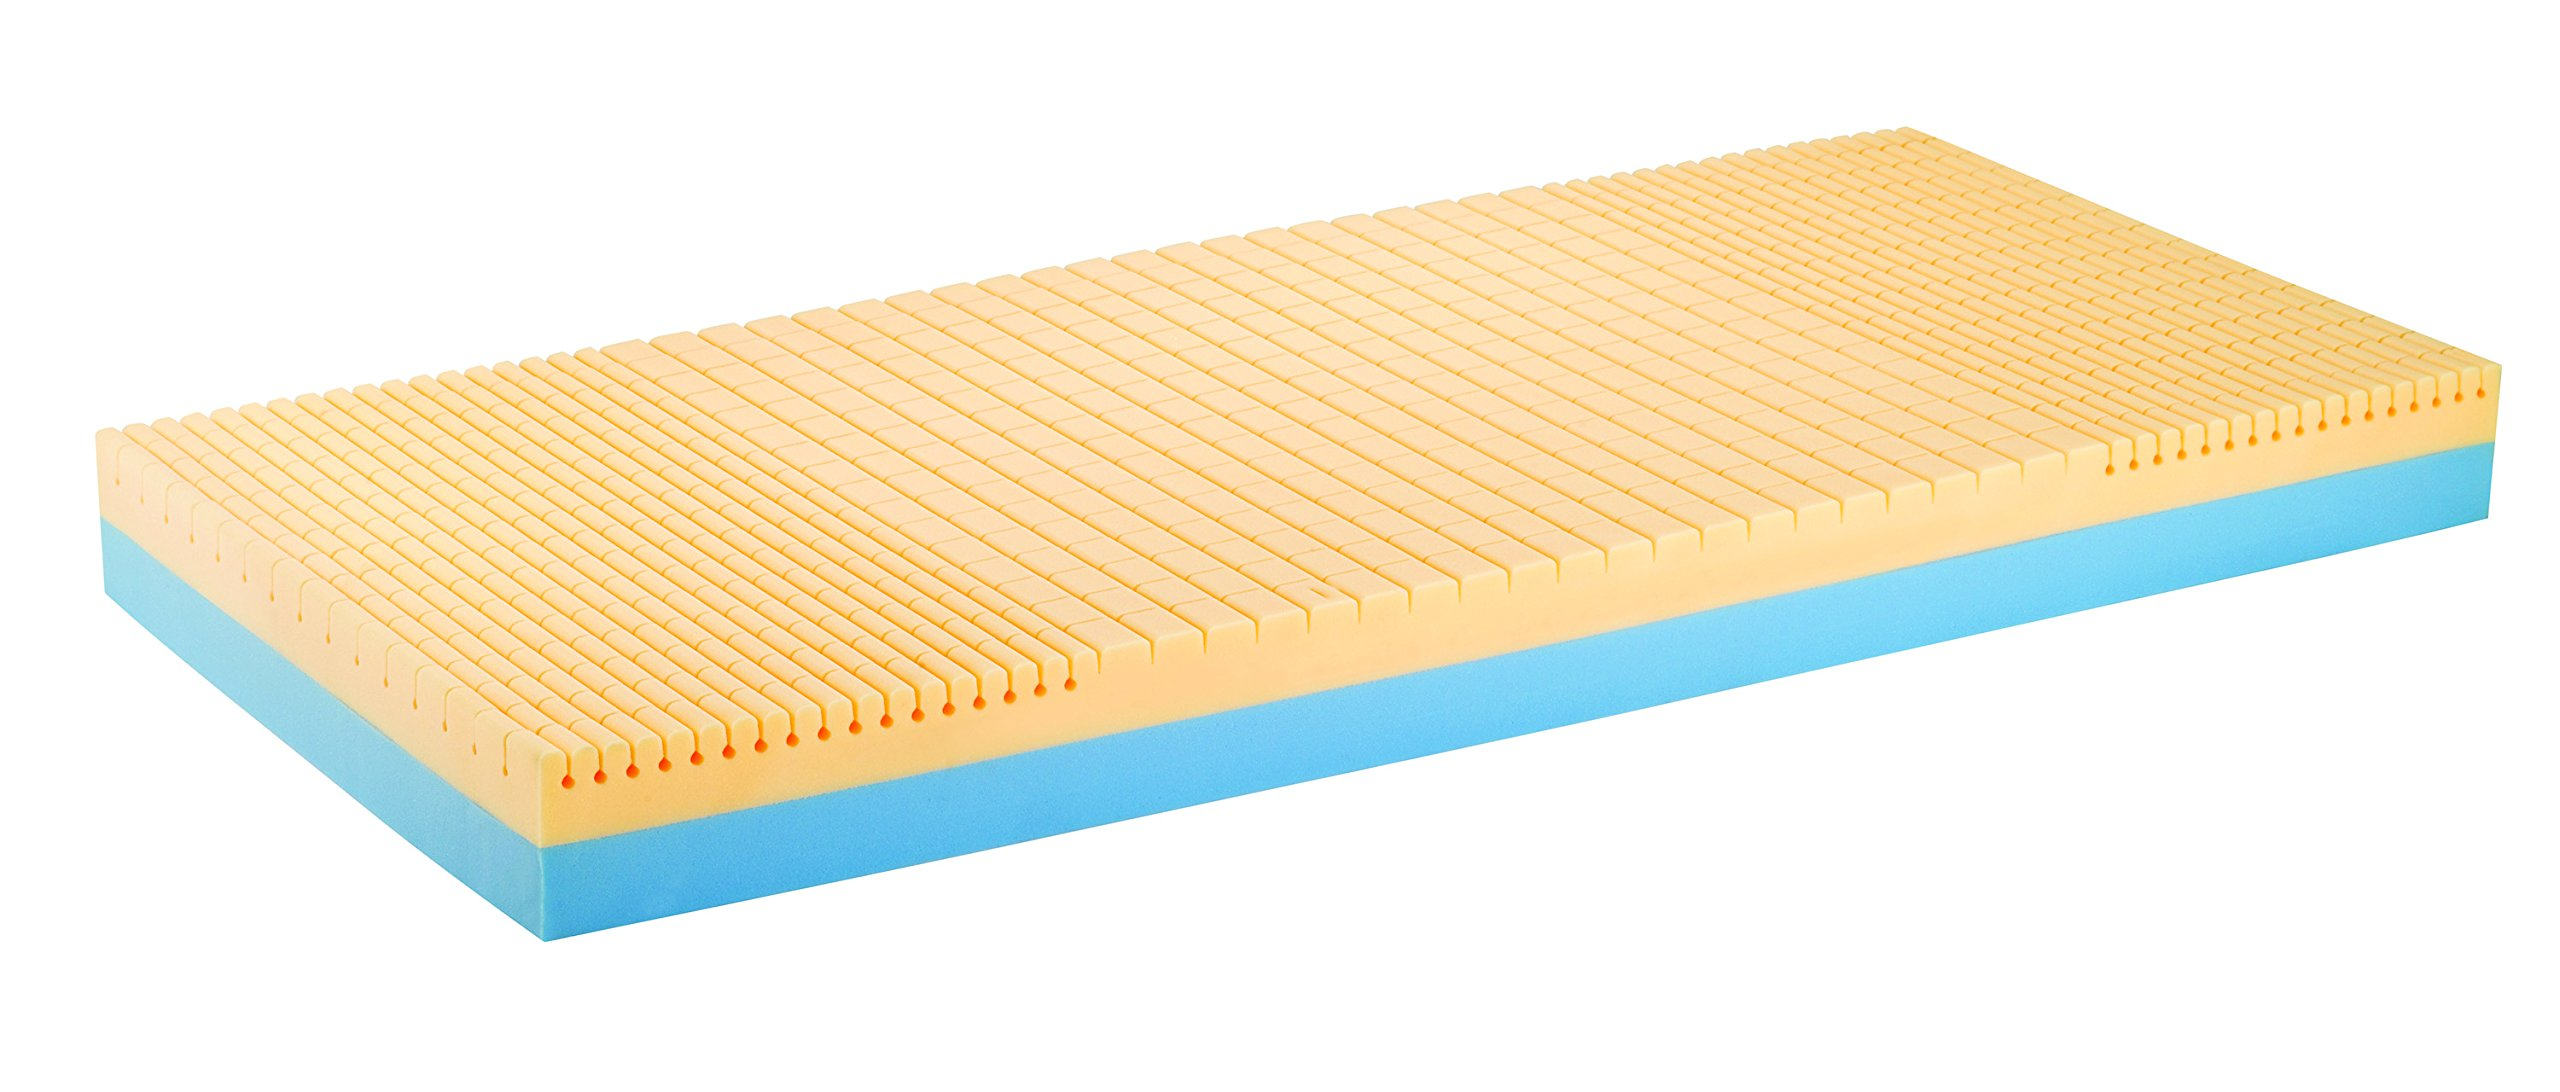 Invacare Softform Excel Mattress, 80 x 36 x 6 inches, countoured Foam Layer, IXL1080 by Invacare (Image #5)